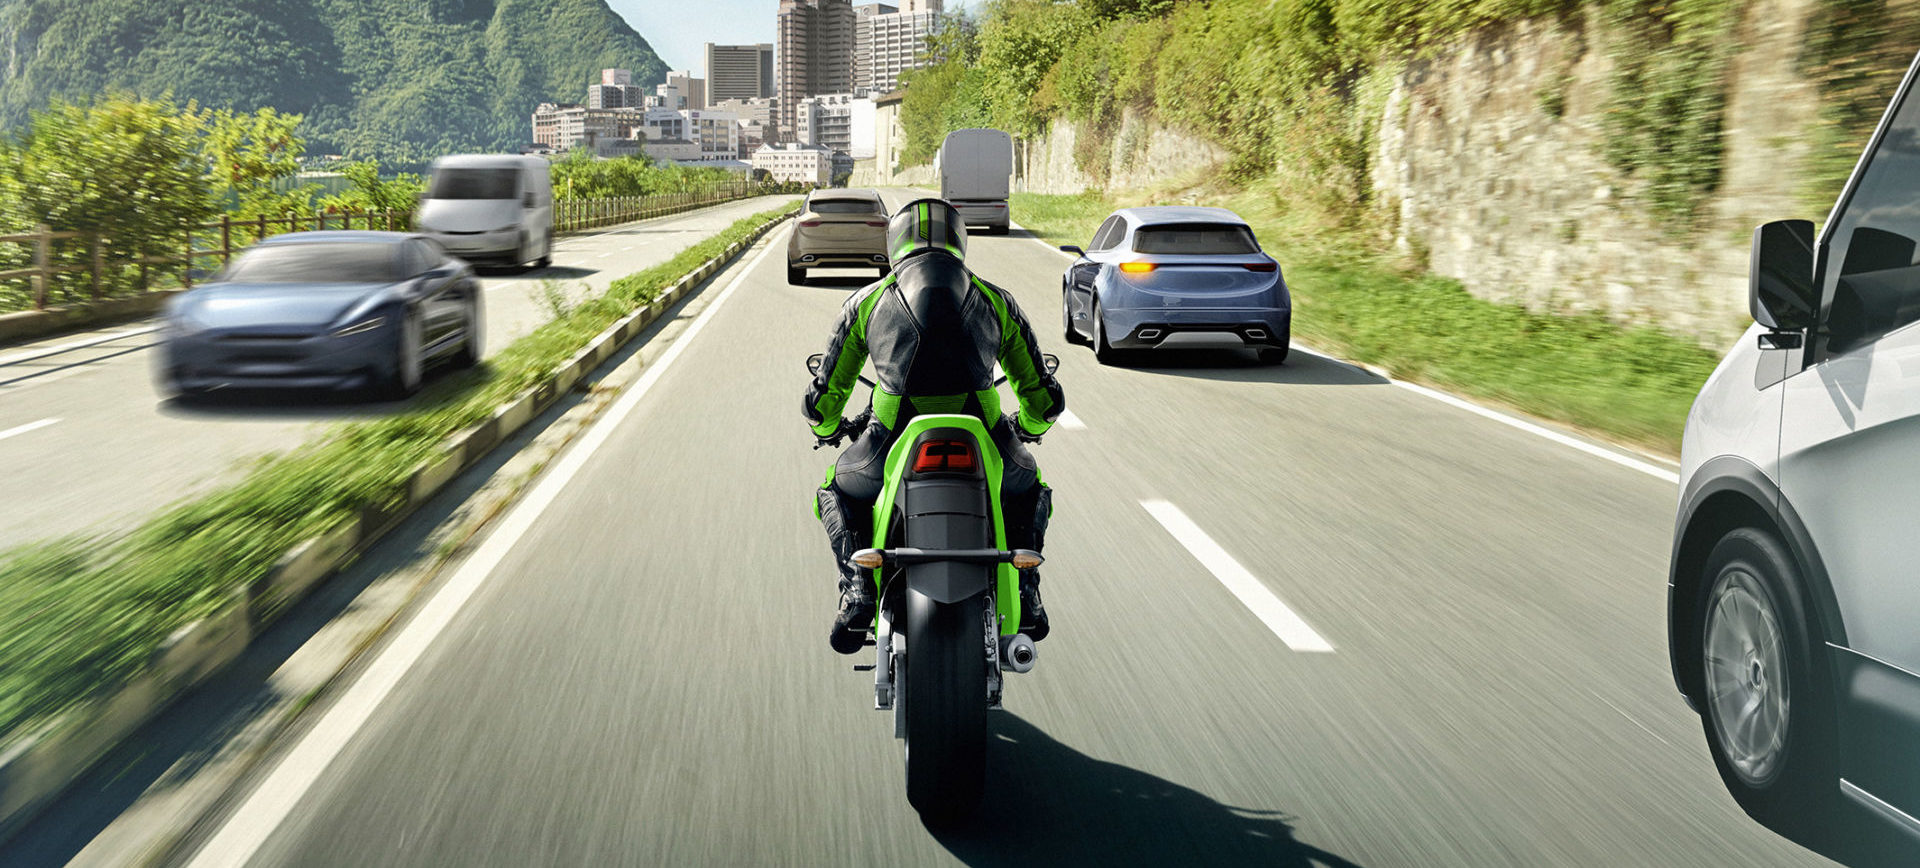 A computer-generated image of a Kawasaki motorcycle being ridden in challenging traffic conditions. Image courtesy of Kawasaki UK.